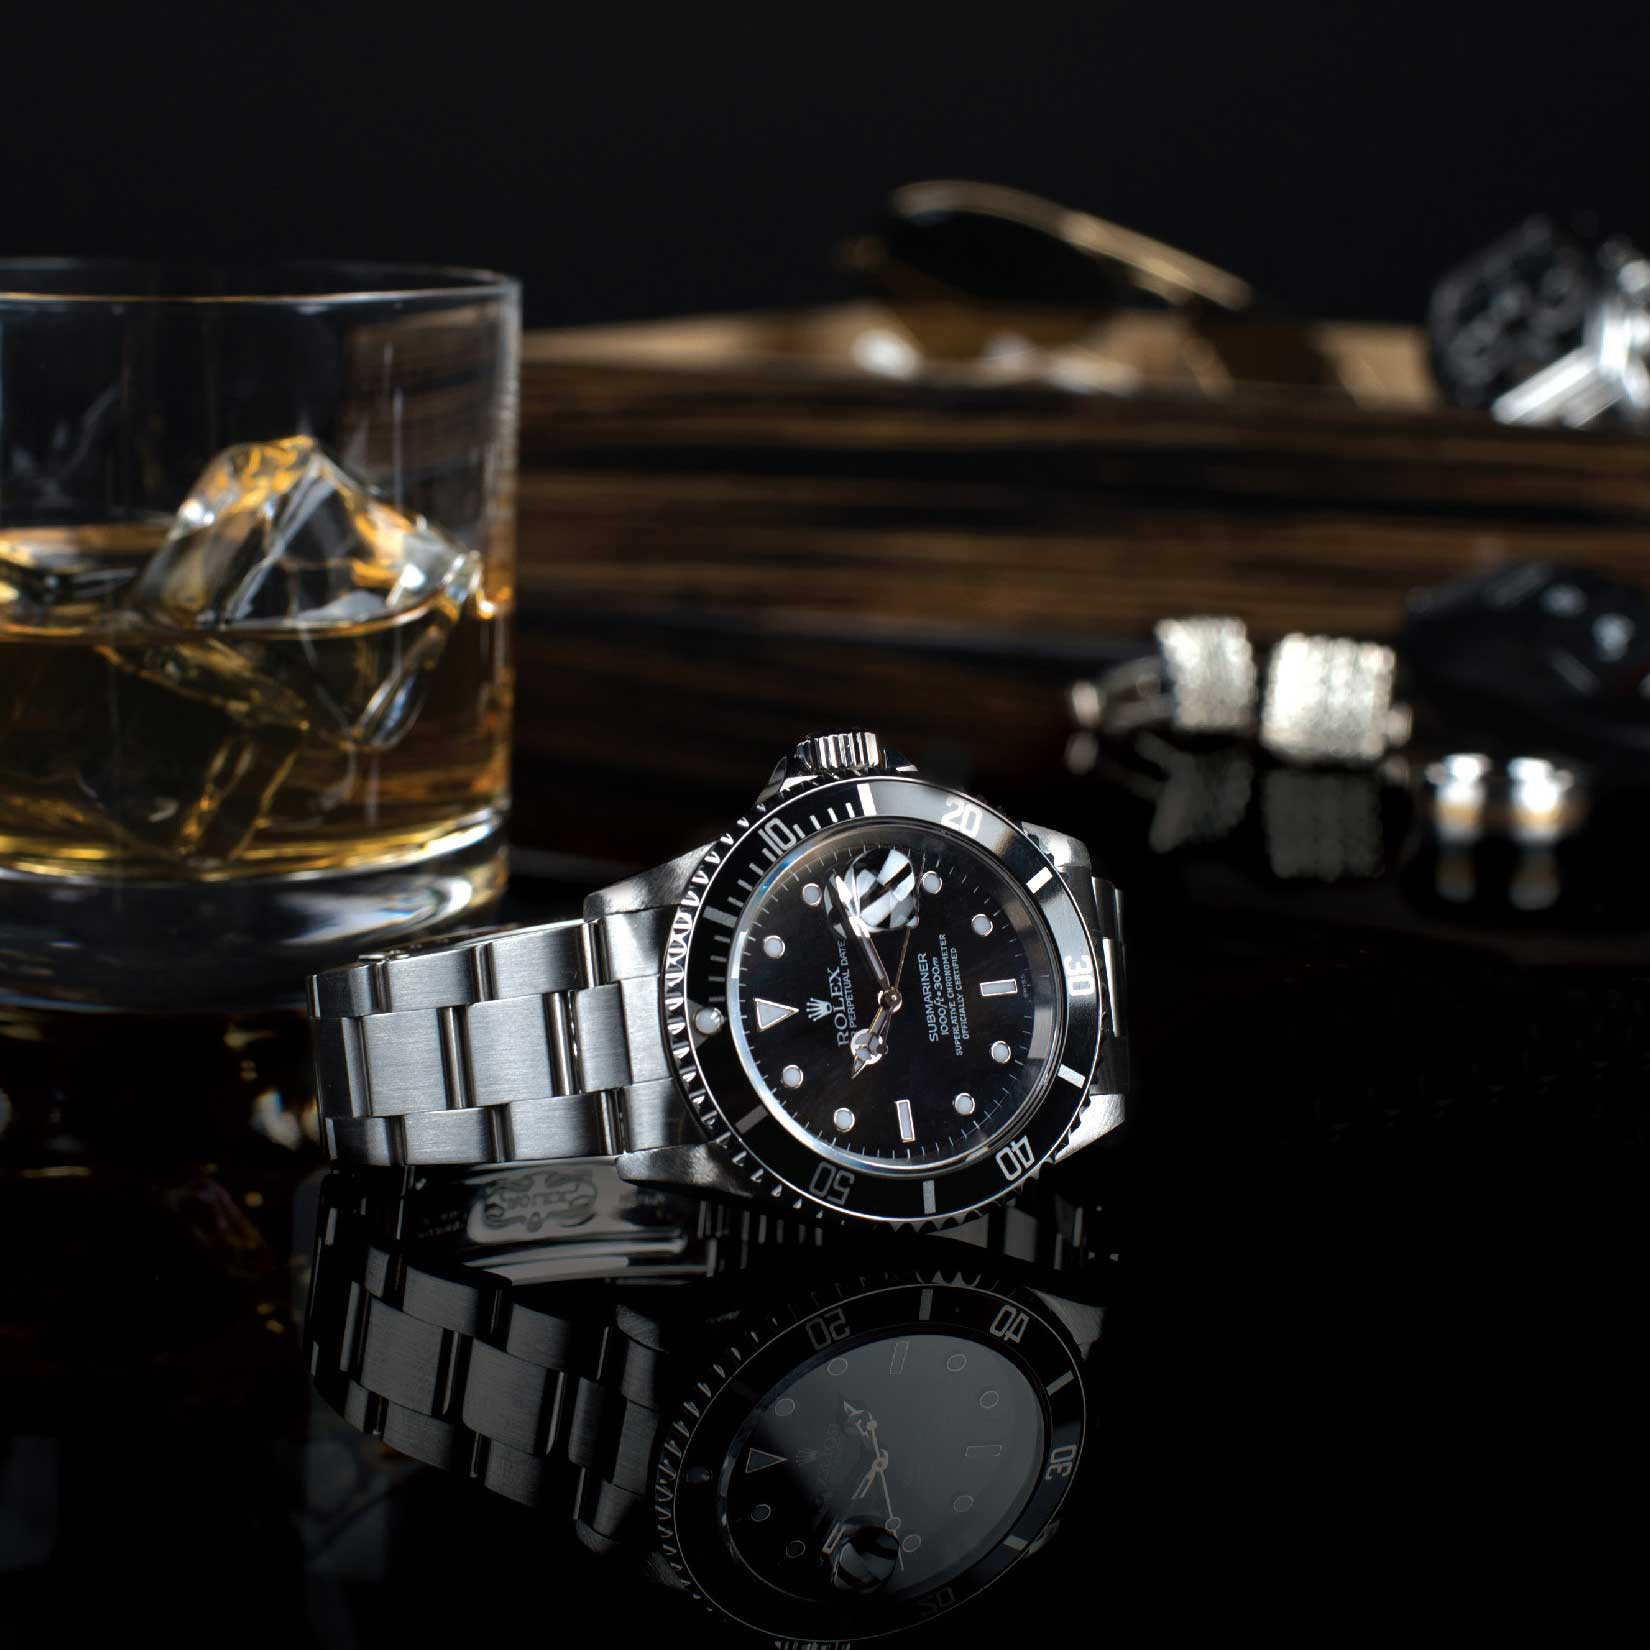 autavia heuer and watches last whiskey drop pin the